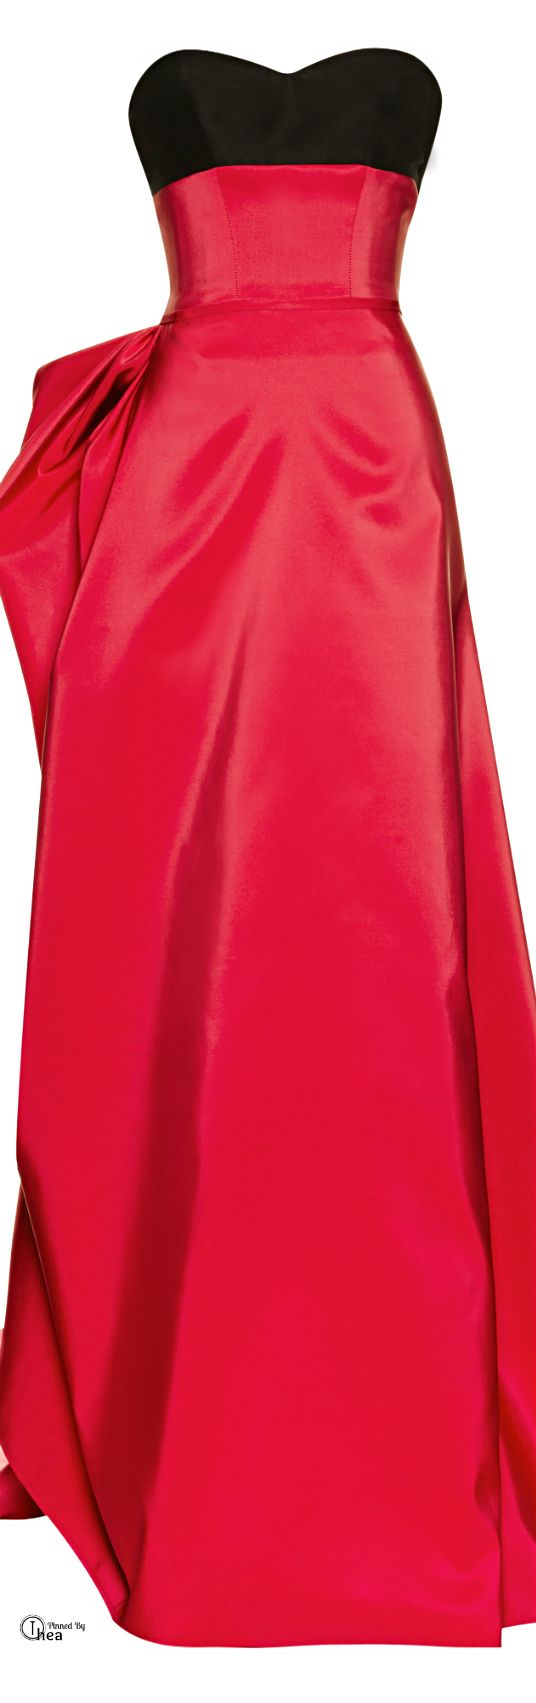 Carolina Herrera ● FW 2014, Silk Faille Gown With Ribbon